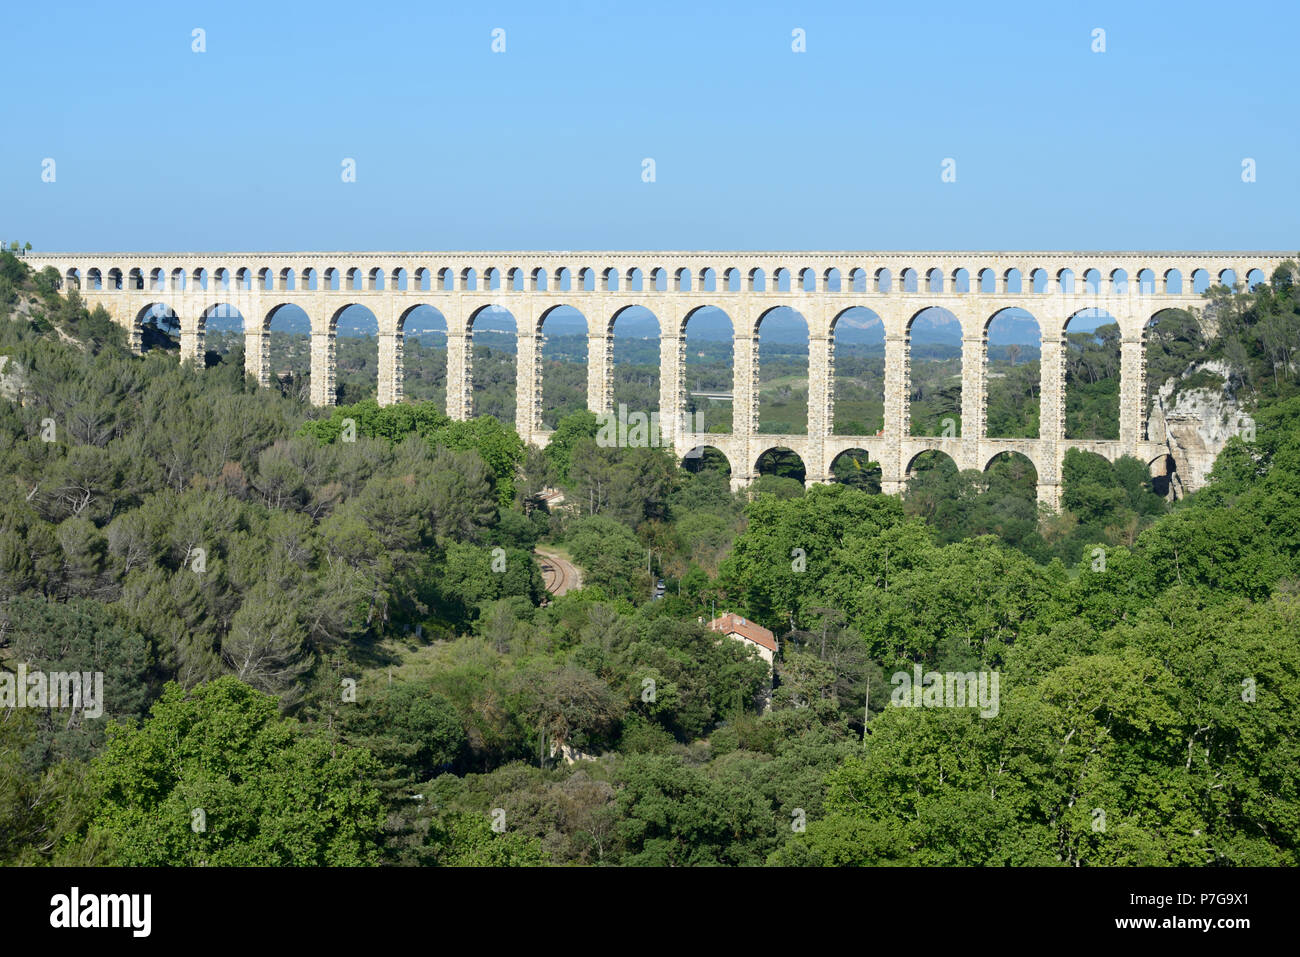 Roquefavour Aqueduct, built in 1847 as part of the Canal de Marseille, at Ventabren near Aix-en-Provence Provence France - Stock Image